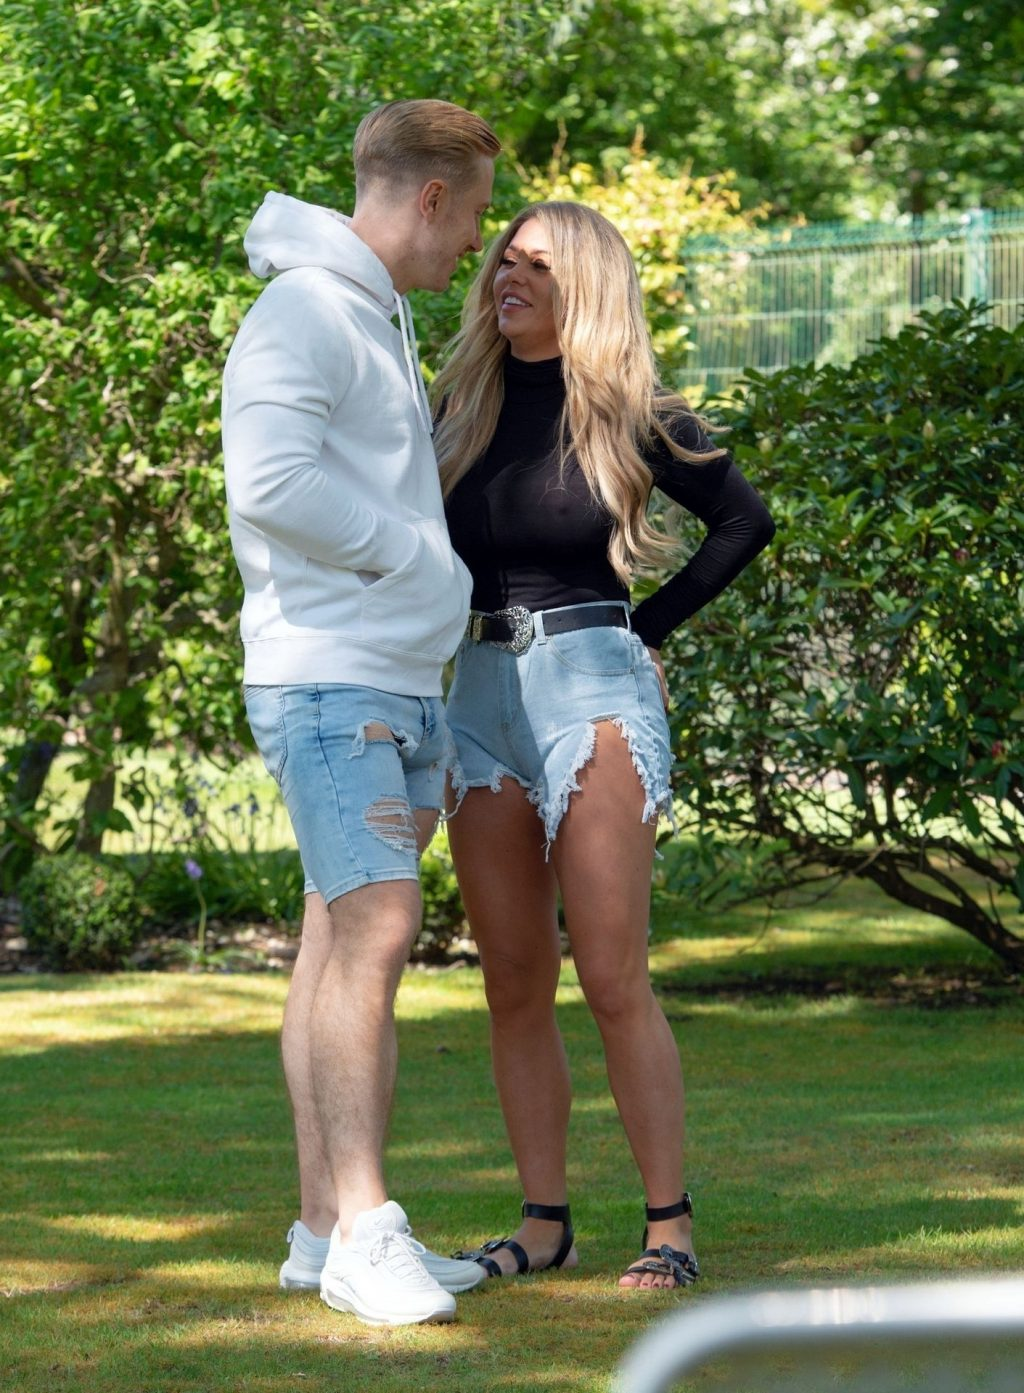 Bianca Gascoigne & Kris Boyson are Seen in Their Local Park in Kent (12 Photos)